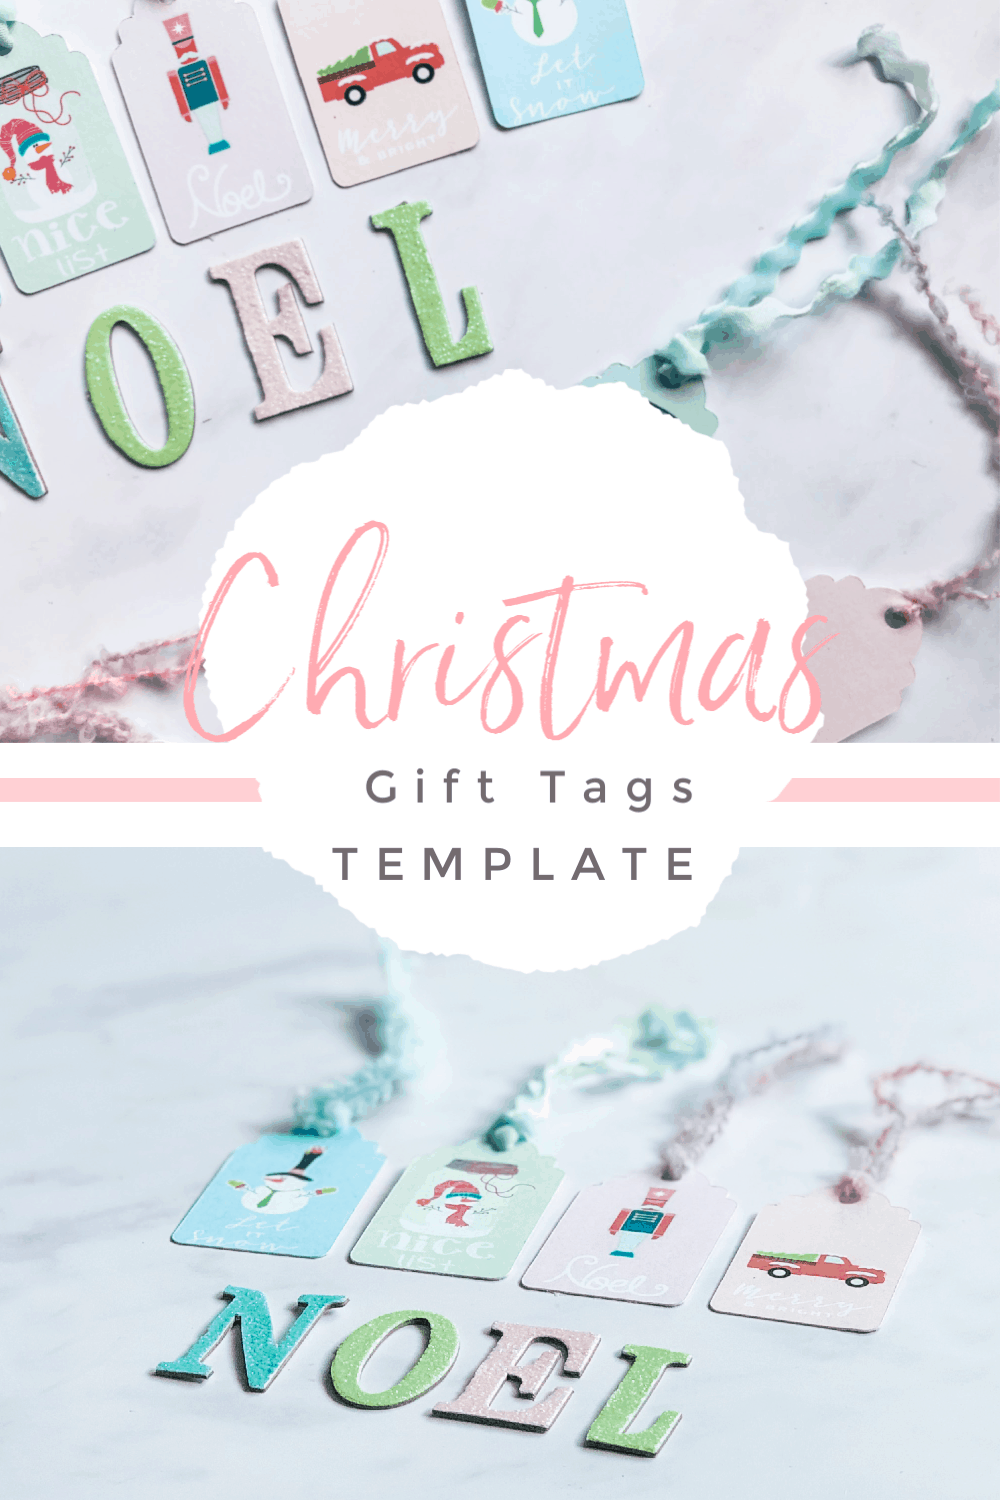 Christmas Gift Tag Template To Print And Cut